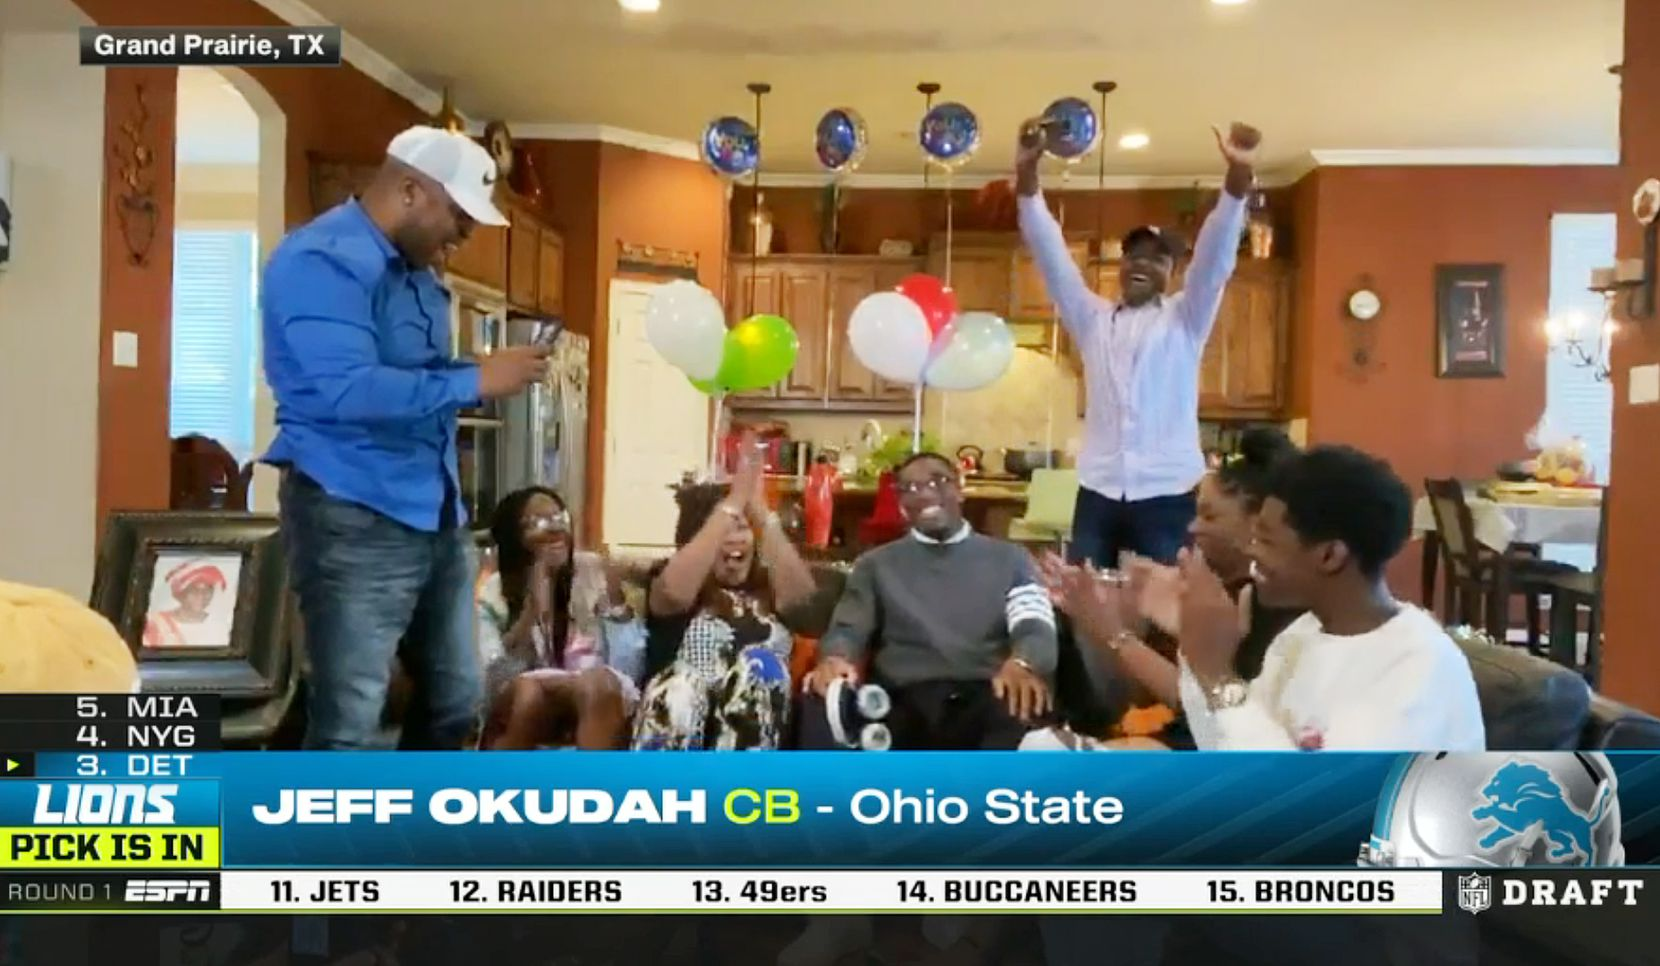 Screen capture of the Detroit Lions third pick in the first round of the NFL Draft, cornerback Jeff Okudah, of Ohio State with family in Grand Prairie, Texas on Thursday, April 23, 2020. Okudah played at South Grand Prairie High School before attending Ohio State. Due to the coronavirus pandemic the NFL Draft was held virtually. (ESPN)